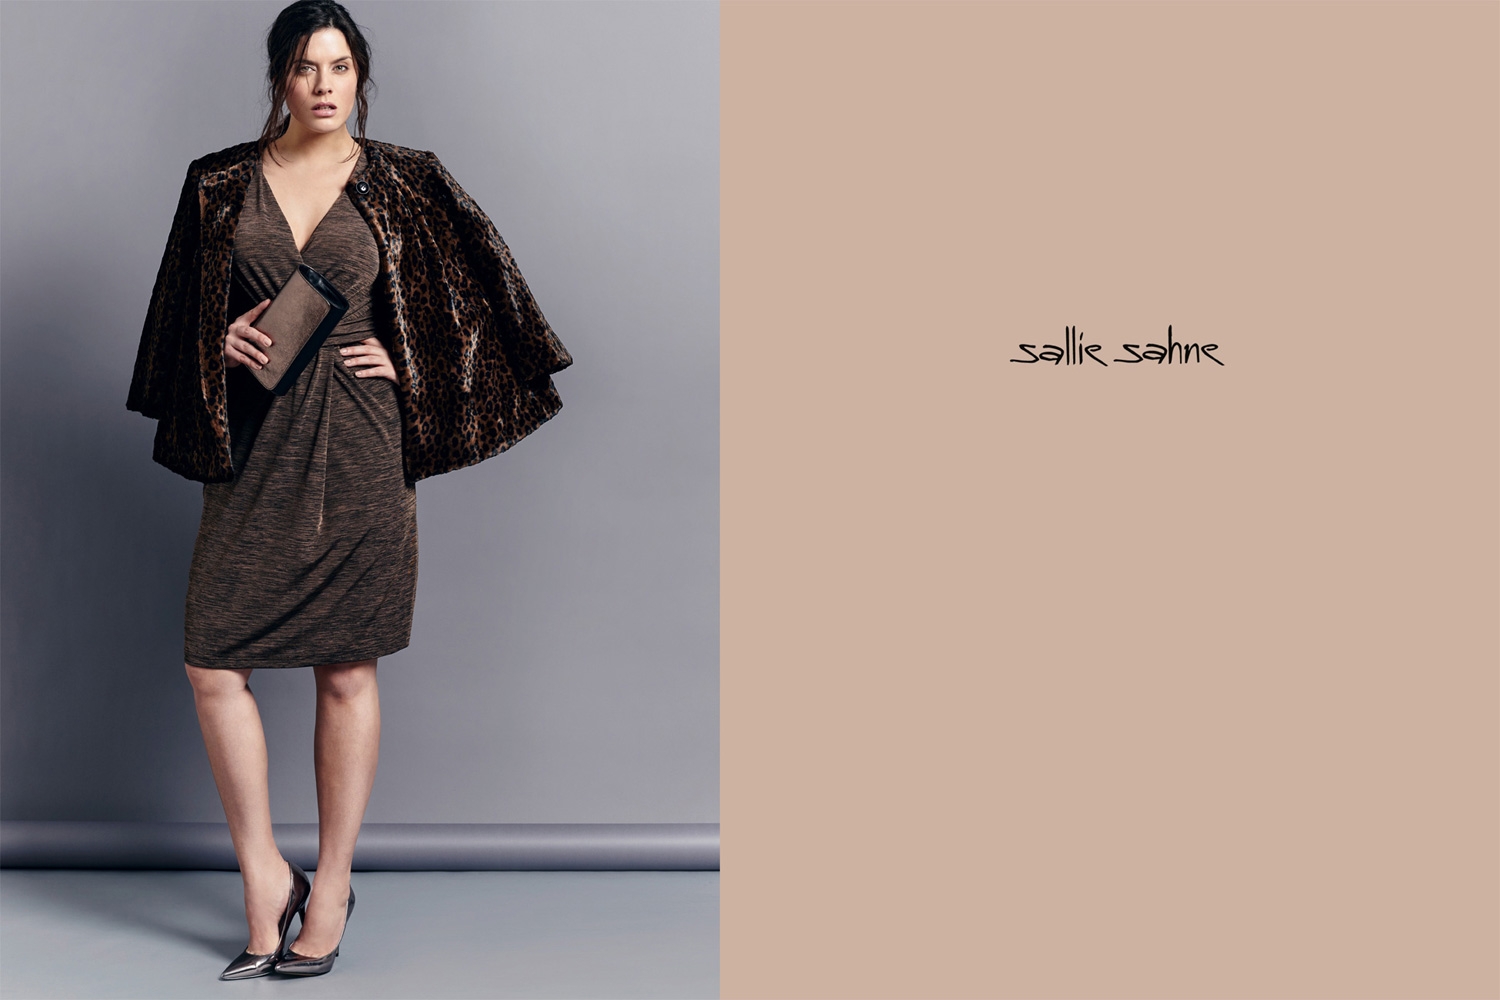 ASTRID M. OBERT PHOTOGRAPHY PRESENTS - SALLIE SAHNE - SS2015 by Eva Lutz - fashion plussize